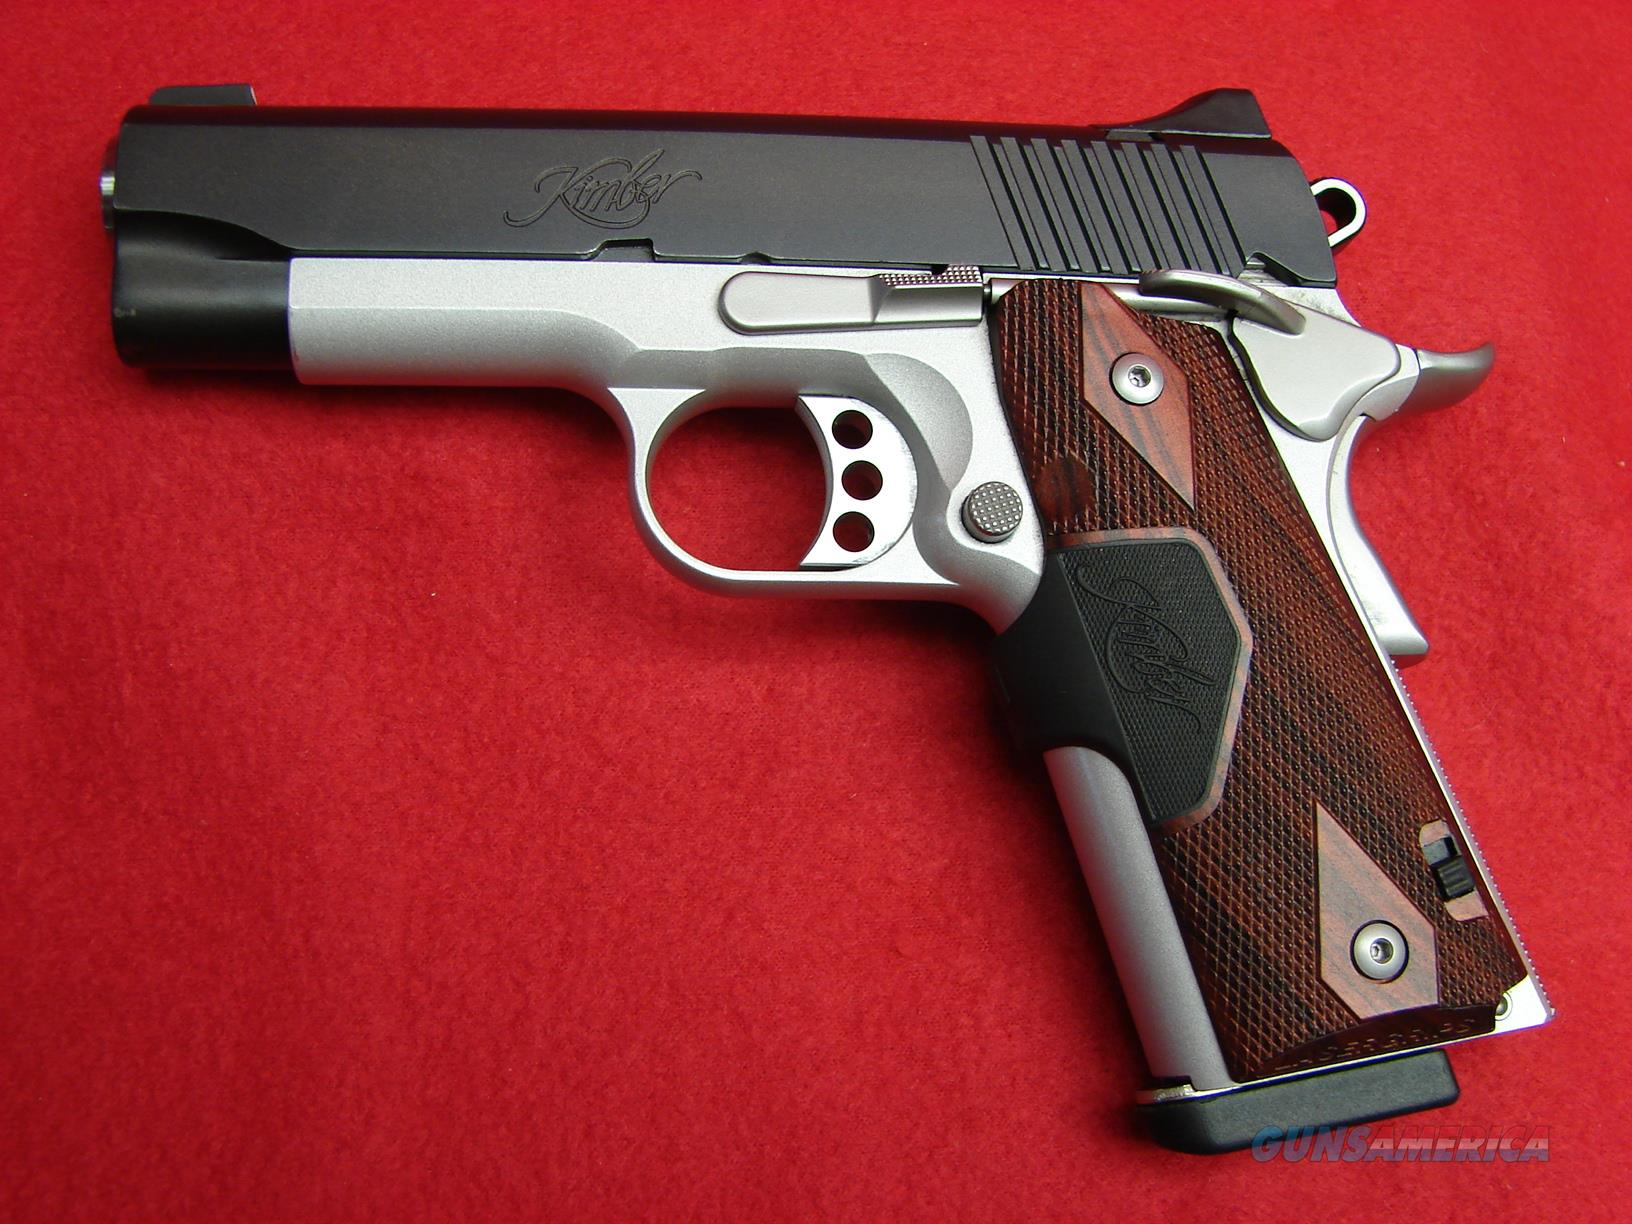 Kimber Pro Crimson Carry II - 1911 - 45acp - w/Crimson Trace Laser - Two-Tone - Used  Guns > Pistols > Kimber of America Pistols > 1911